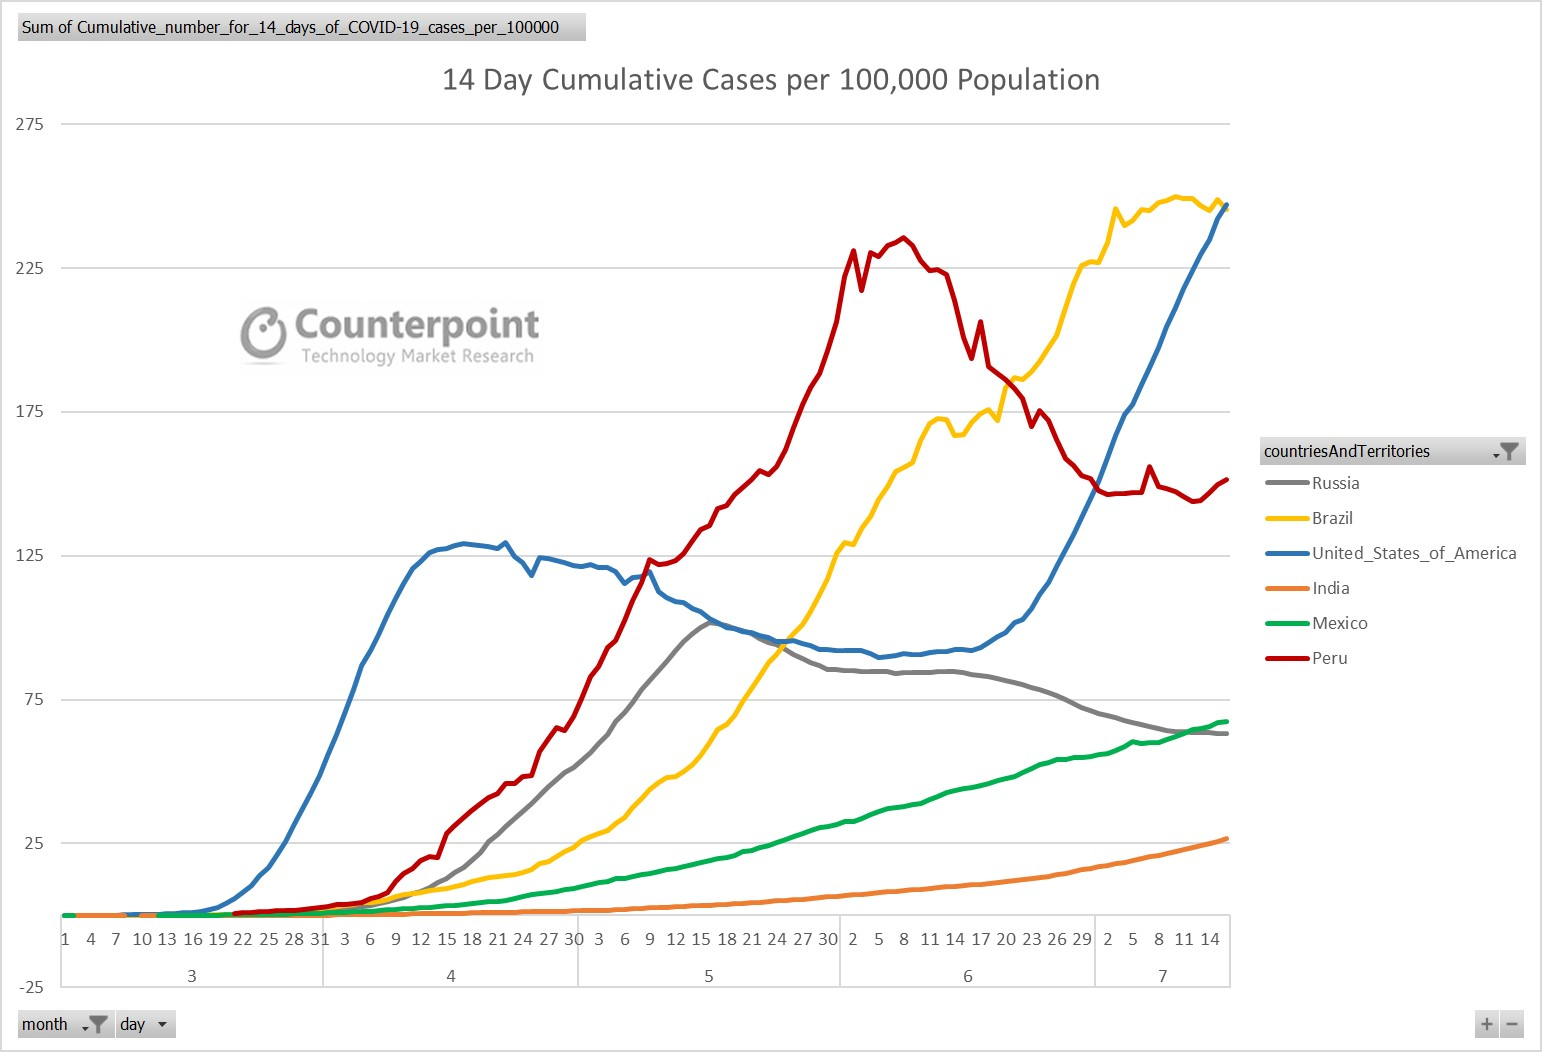 Counterpoint 14 Day Cumulative Cases per 100,000 Population